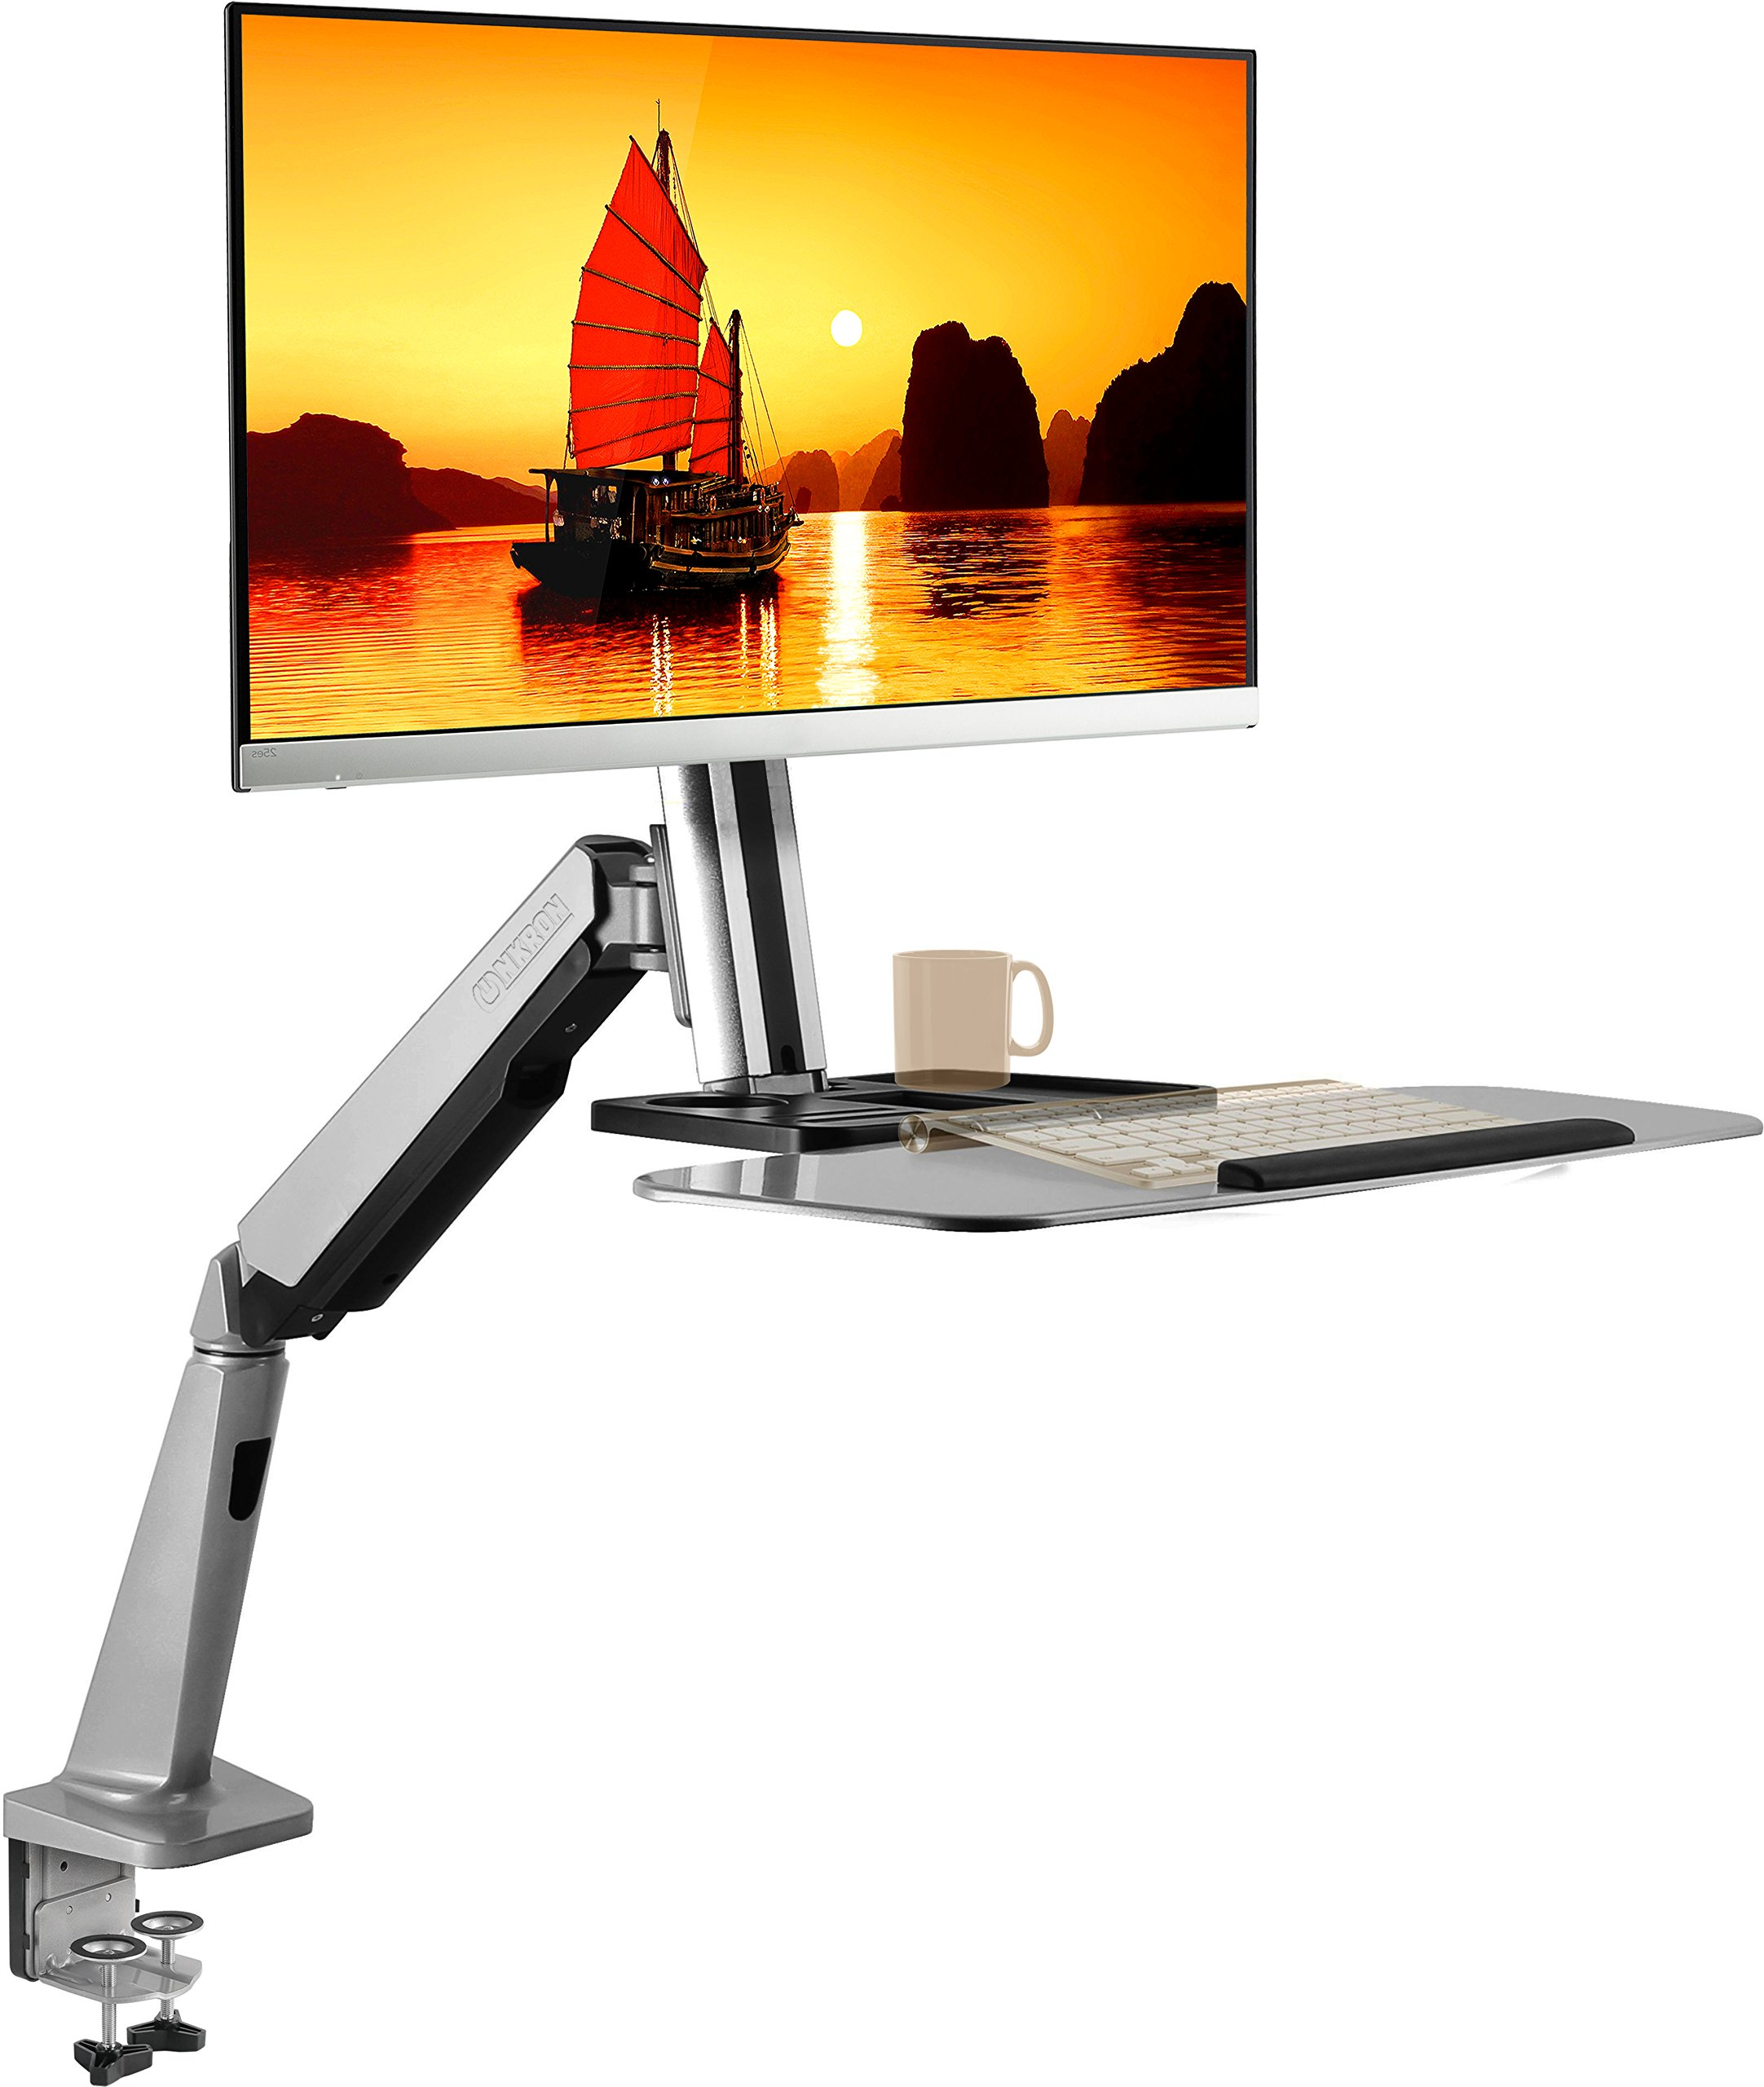 ONKRON Desk Mount - Stand Up Workstation with Single Monitor Mount for 13'' - 32 Inch LCD LED OLED Computer Monitors with Height Adjustable Keyboard & Monitor Arm W1GD Silver